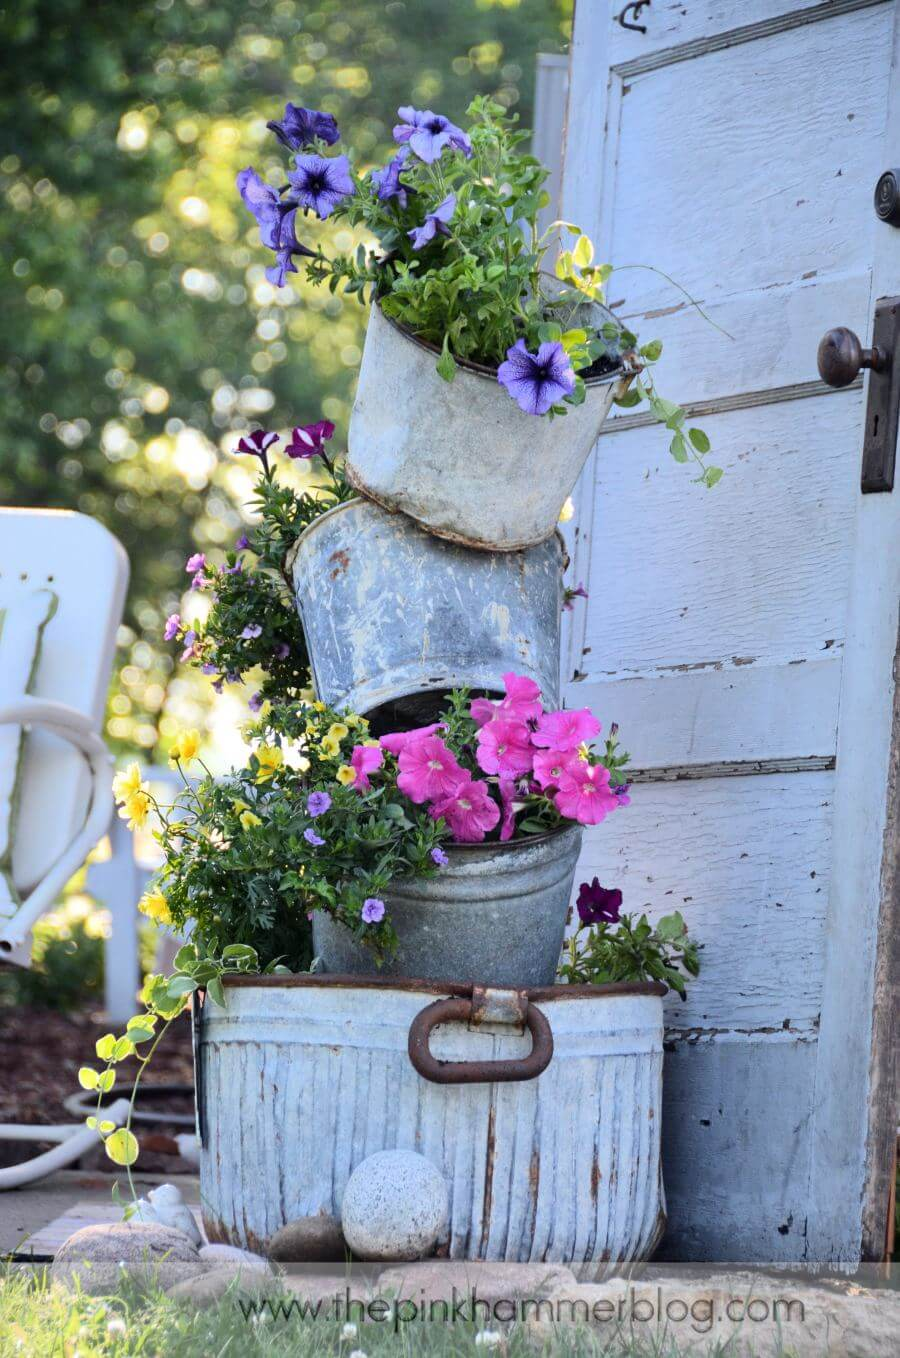 Vintage Garden Decor Ideas: Galvanized Metal Bucket Flower Planter Display